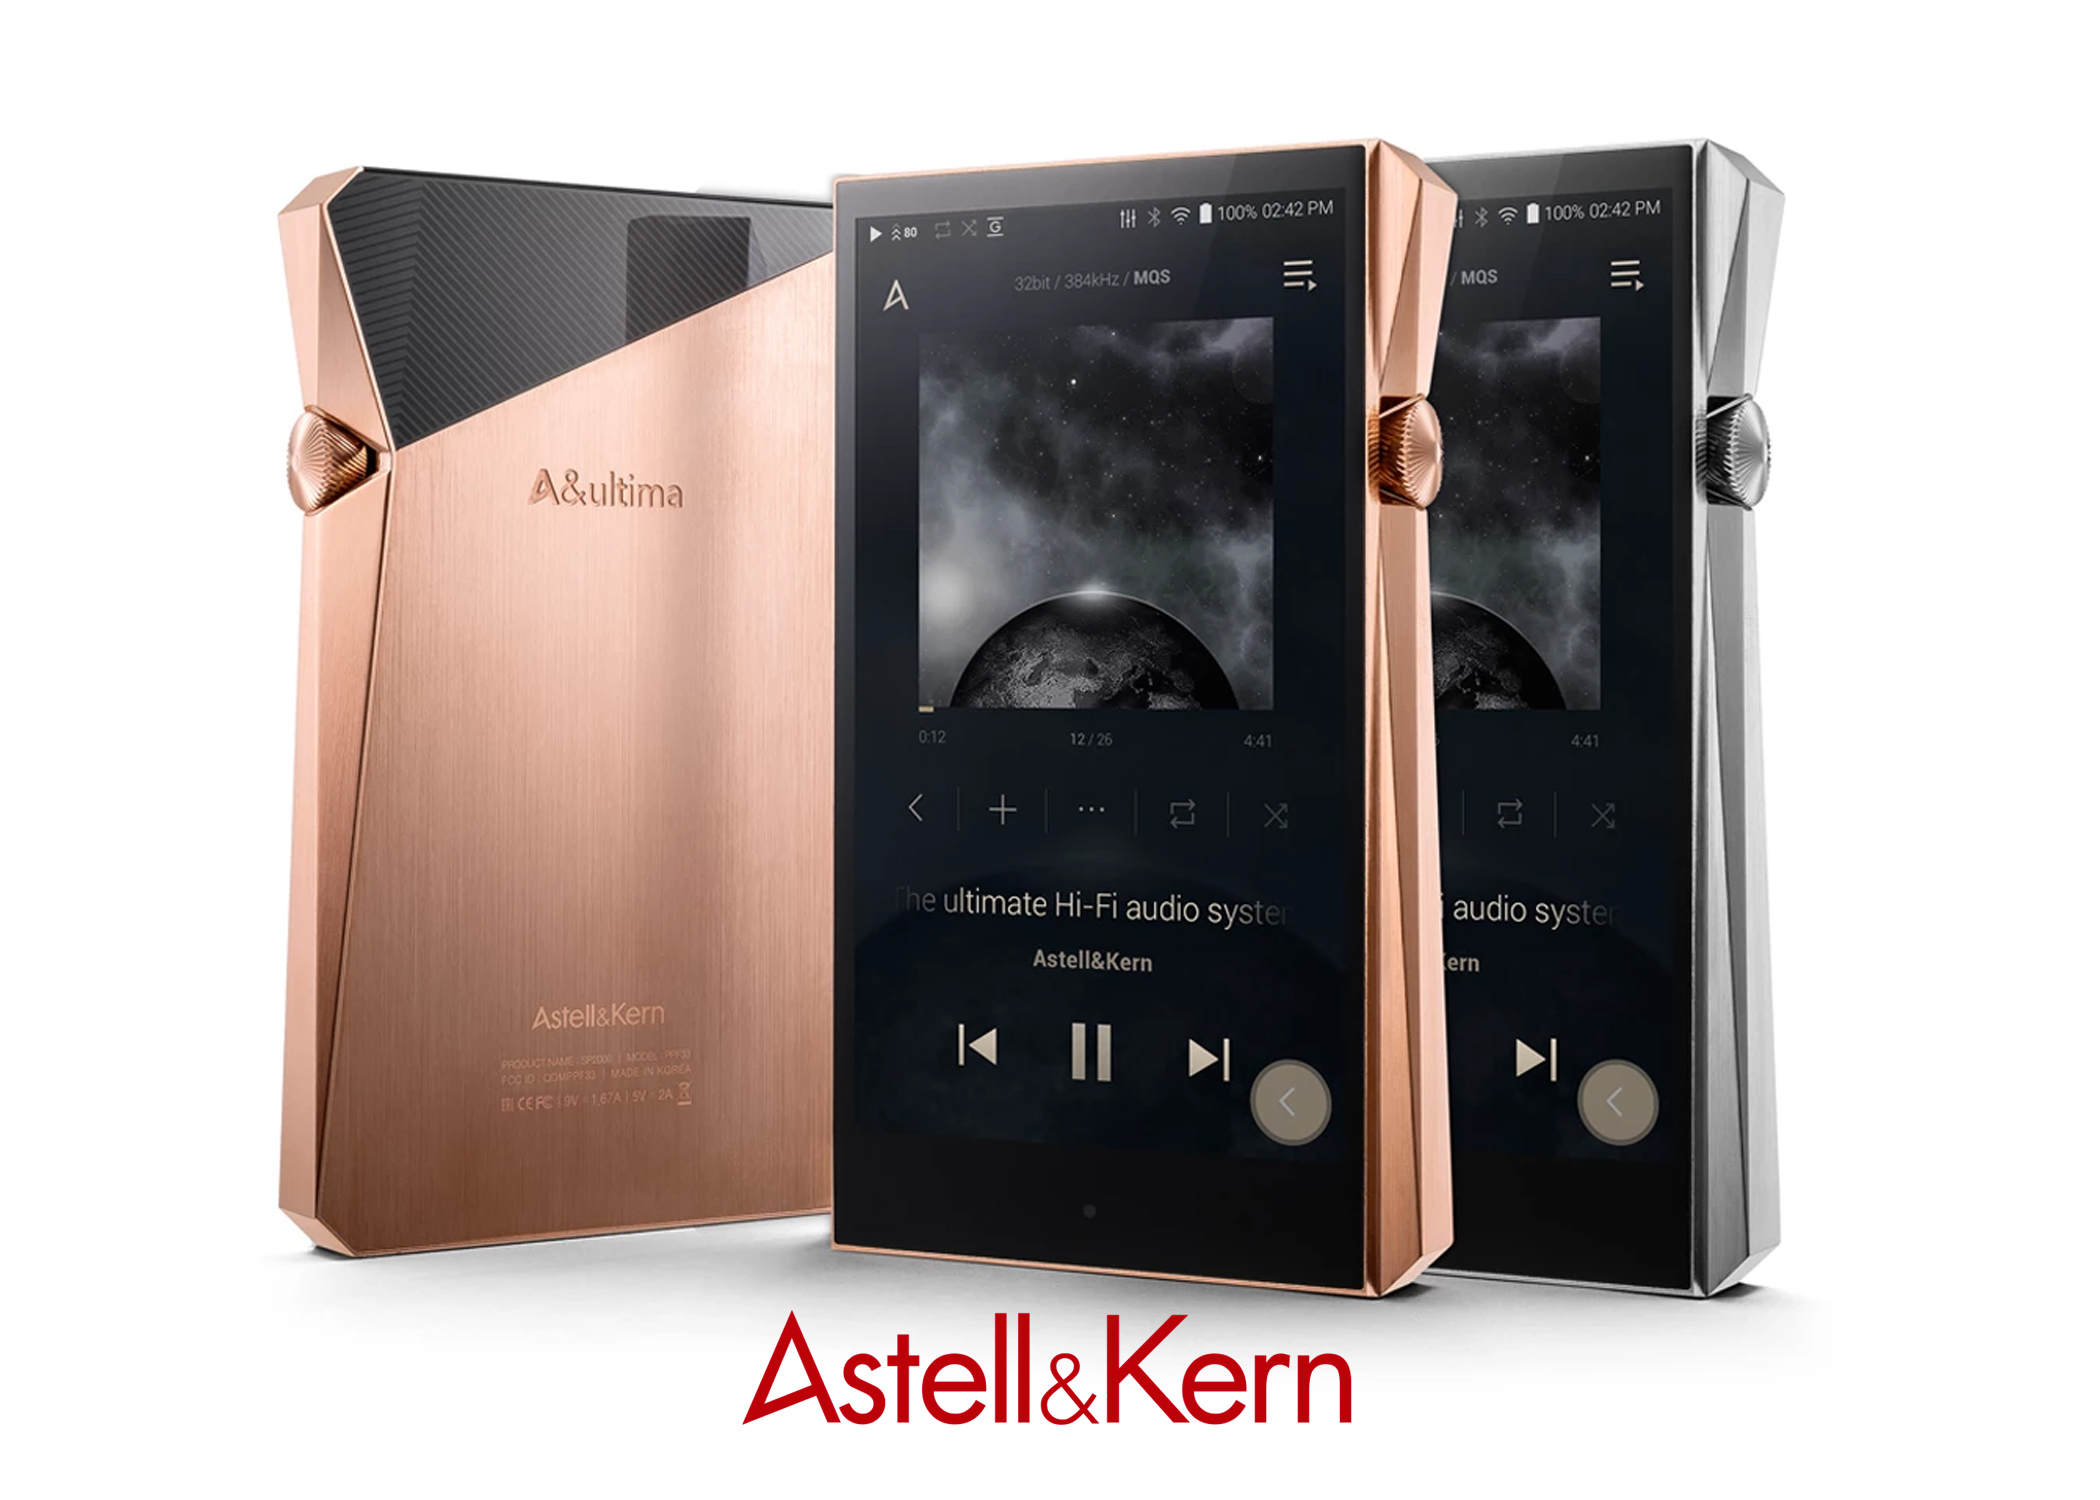 Astell&Kern A&ultima SP2000 MQA Certified Portable Audio Player